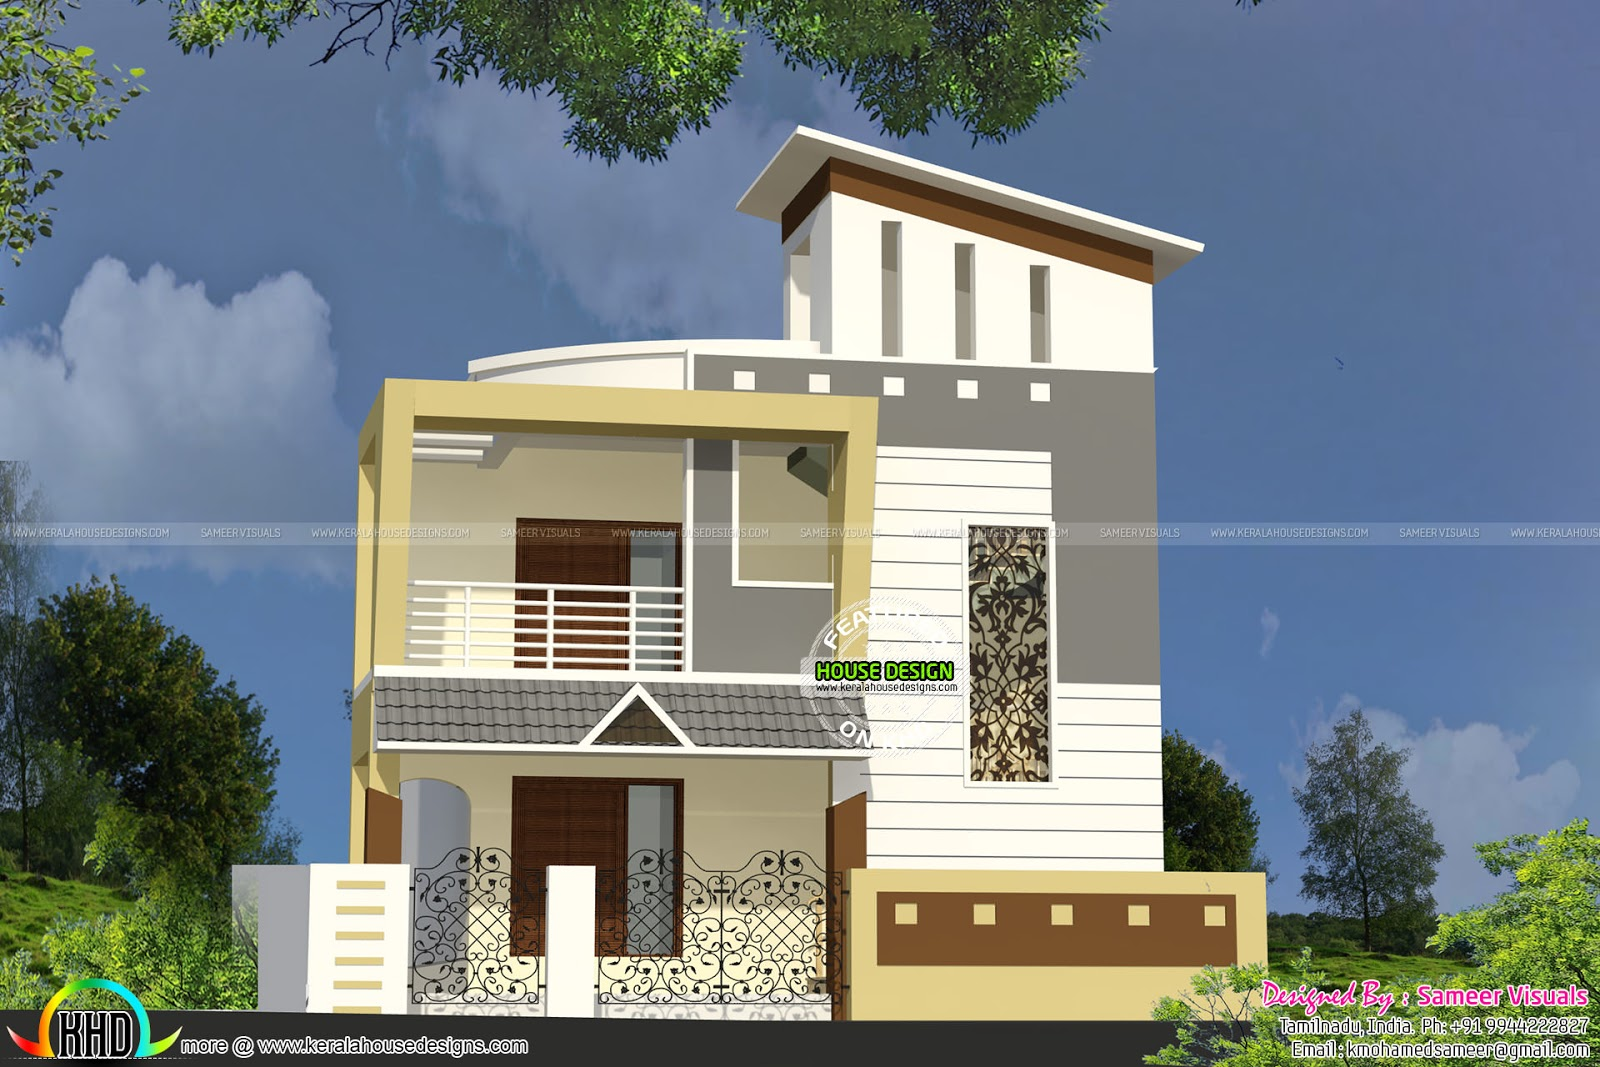 Double floor small home kerala home design and floor plans for Small house design 3rd floor